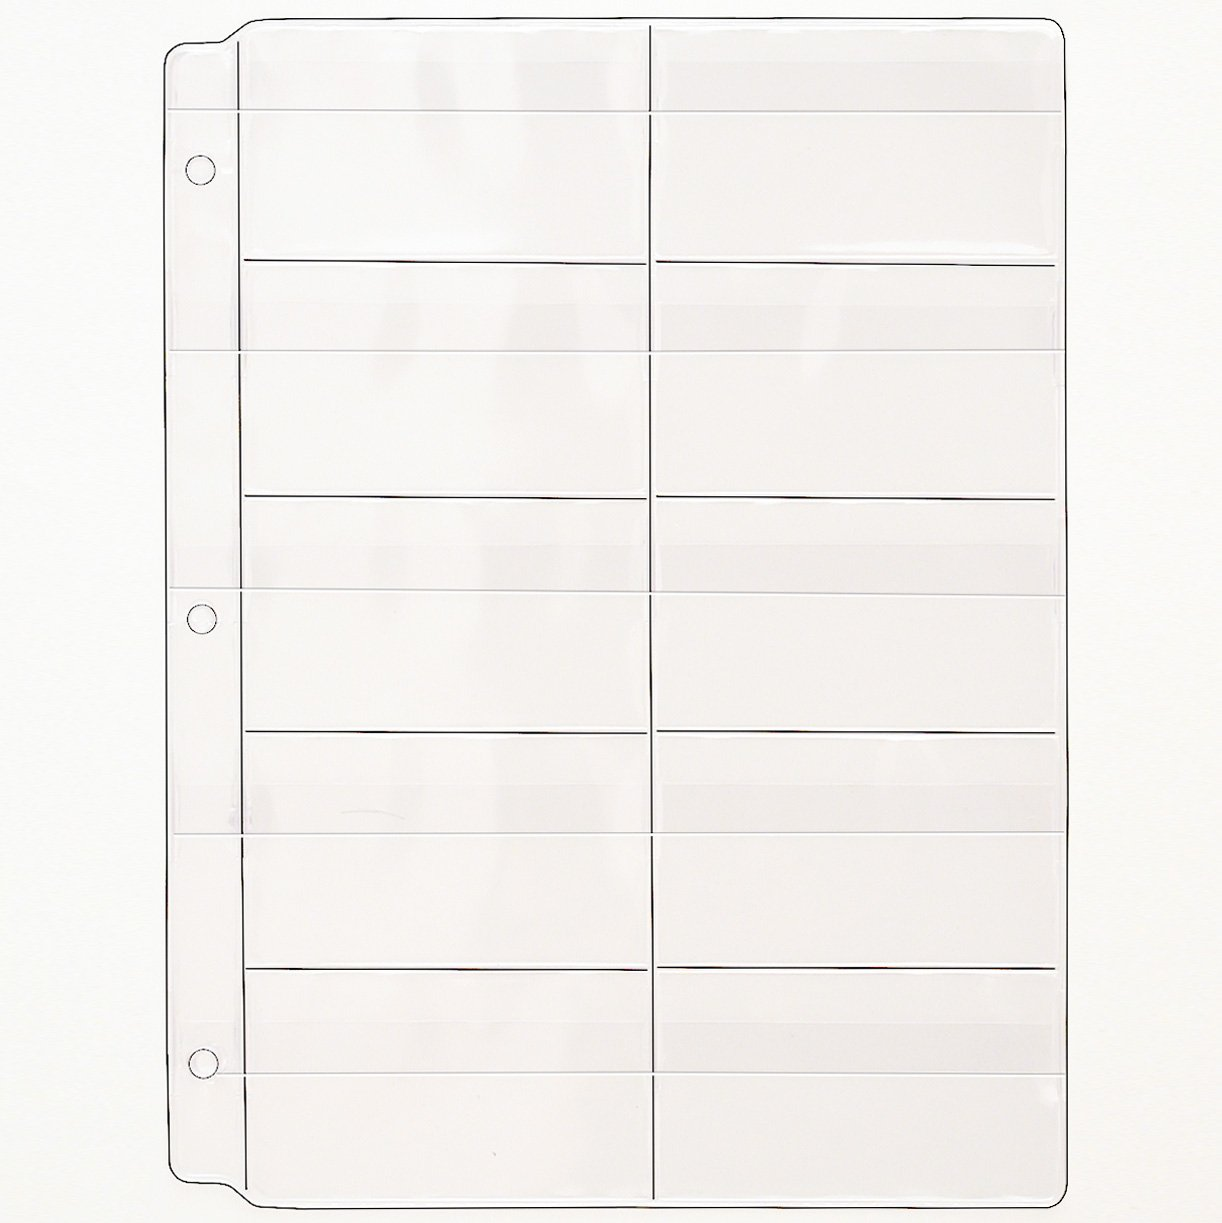 Business card binder pages gallery business card template amazon storesmart plastic pages memory sd cards and amazon storesmart plastic pages memory sd cards and colourmoves